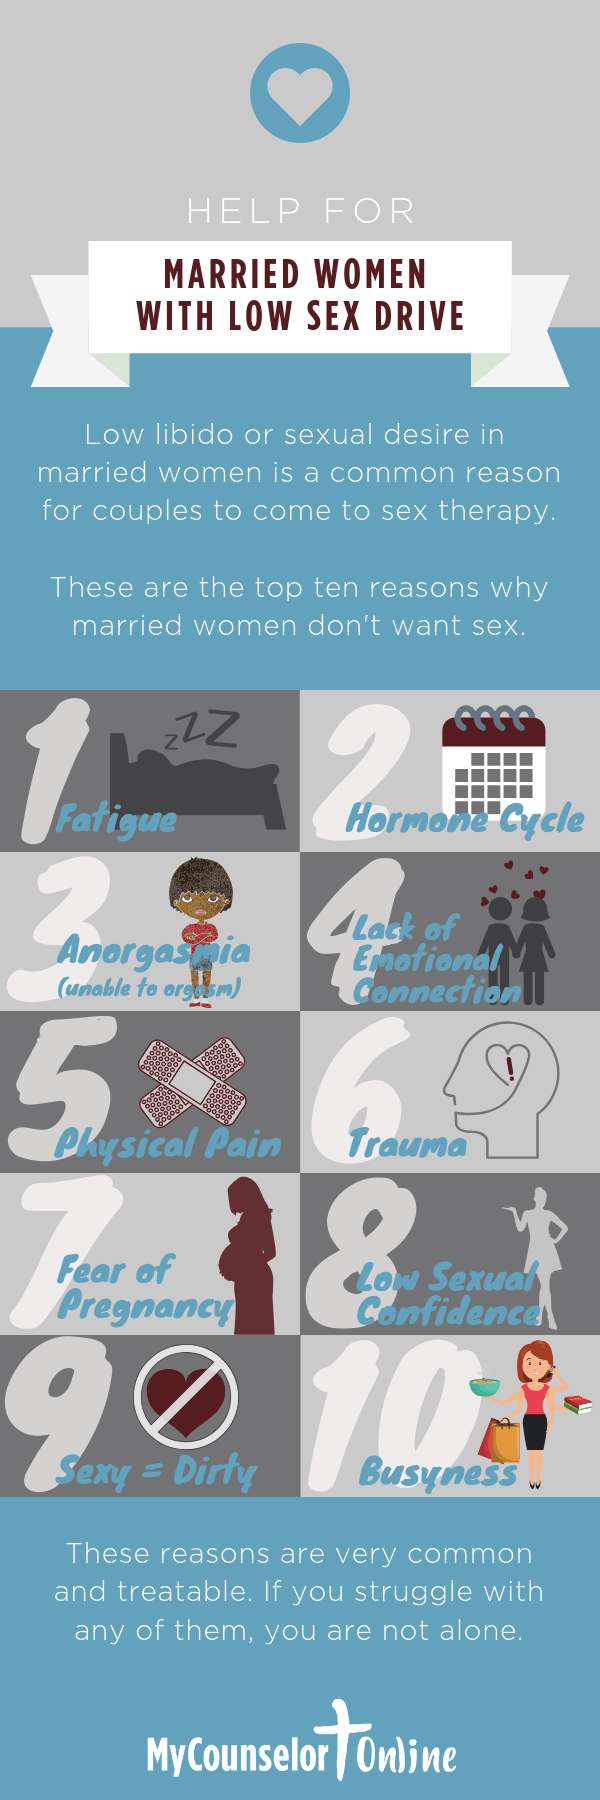 help for married women with low sex drive infographic